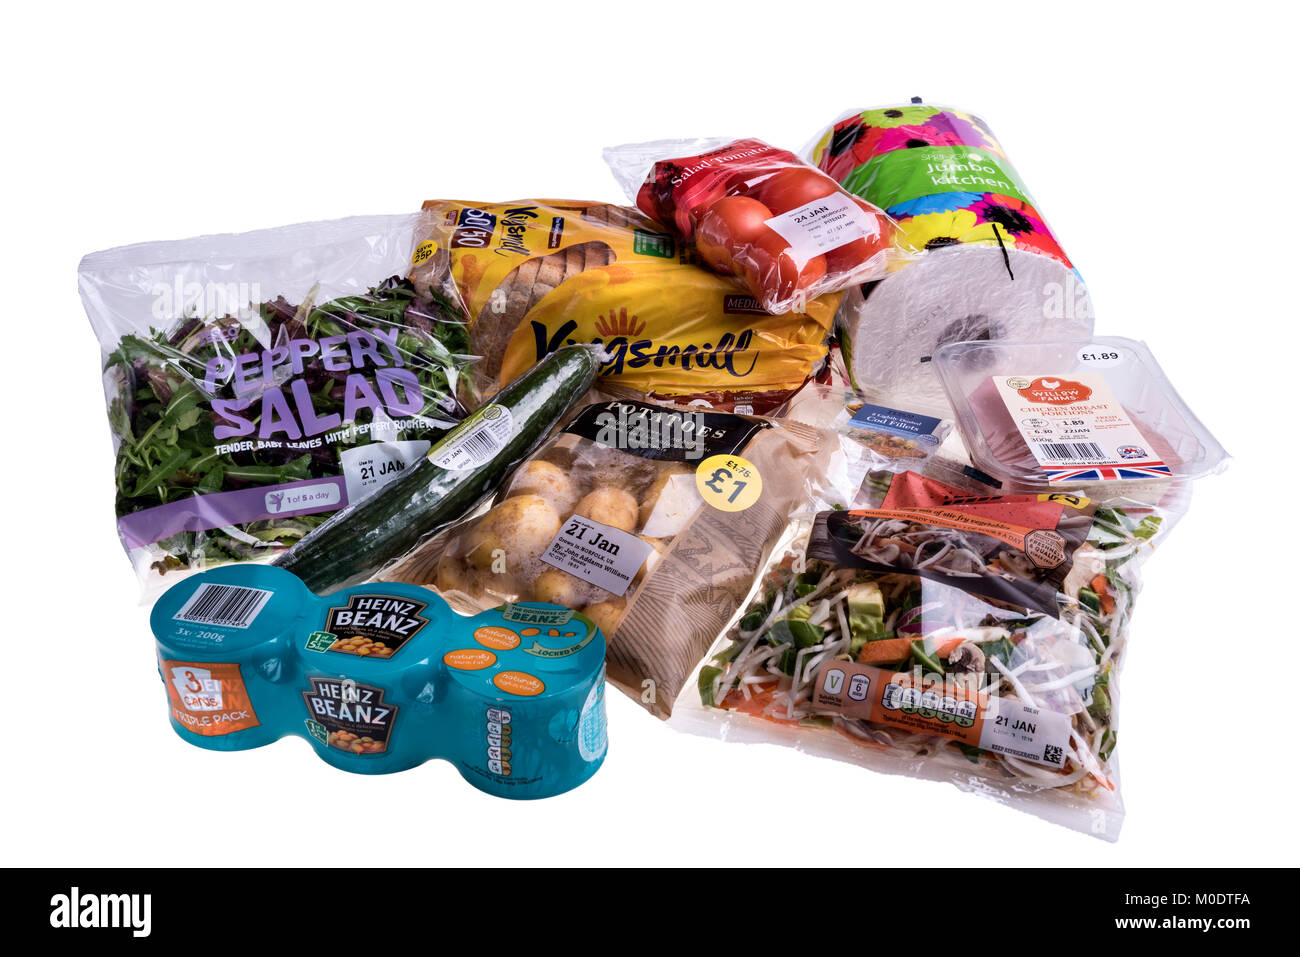 A range of supermarket products with different types of plastic wrapping. - Stock Image